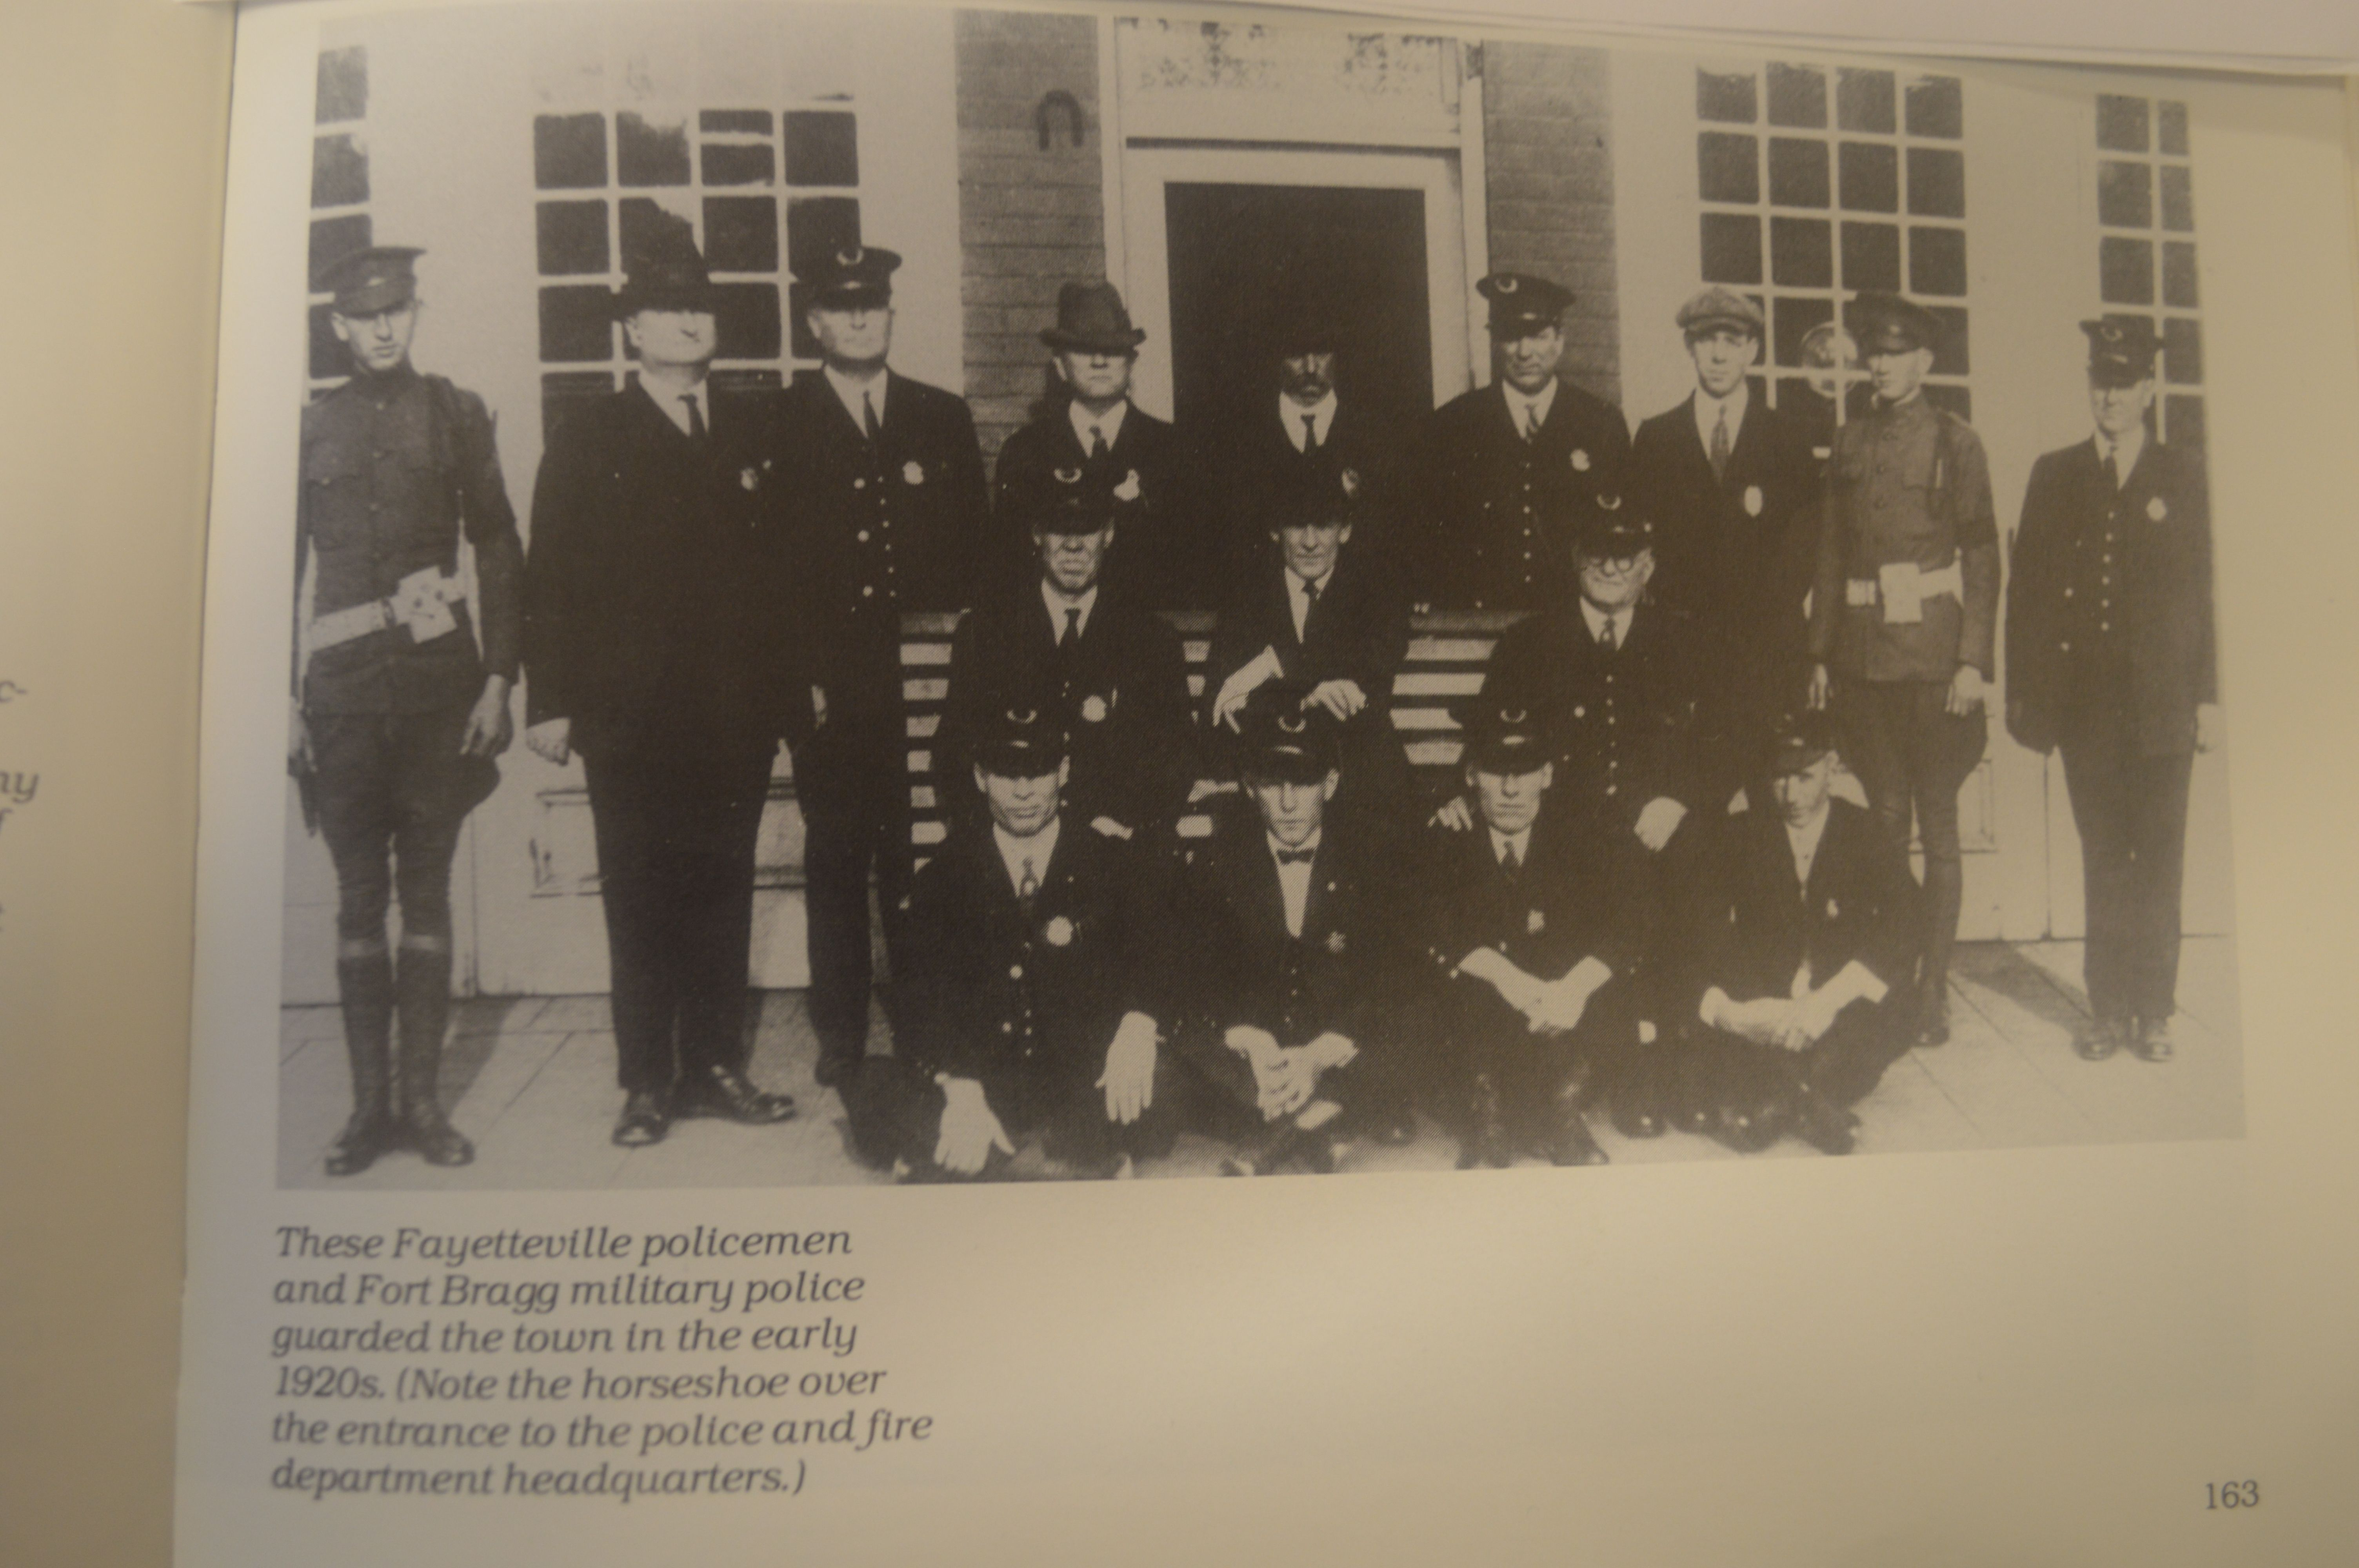 Early 1920 S Photo Of Fayetteville Nc Police And Mp S From Fayetteville North Carolina A Pictorial History By 1920s Photos Fayetteville Nc Military Police